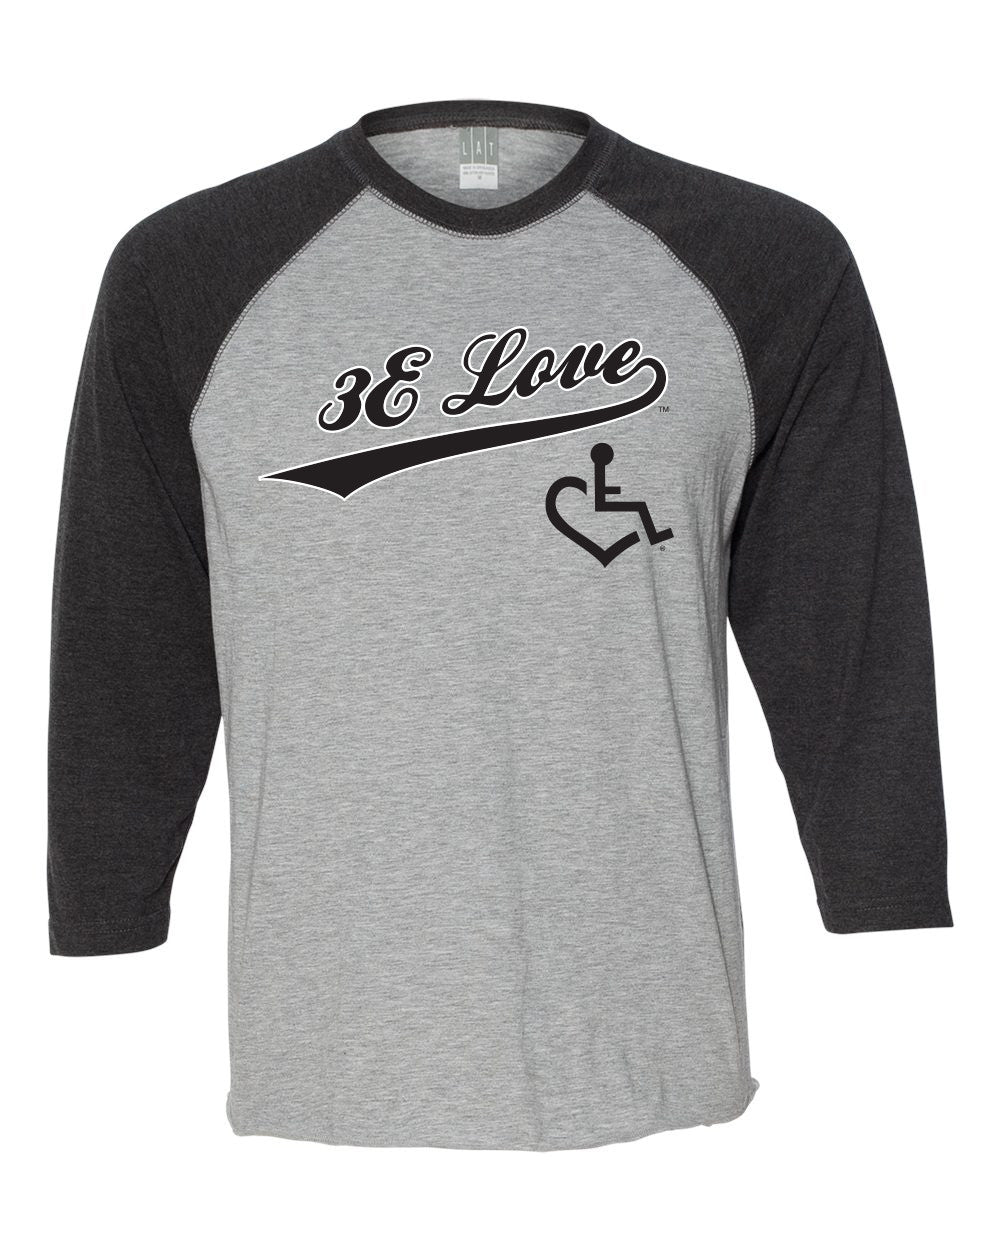 Team 3E Love Baseball Tee - Black